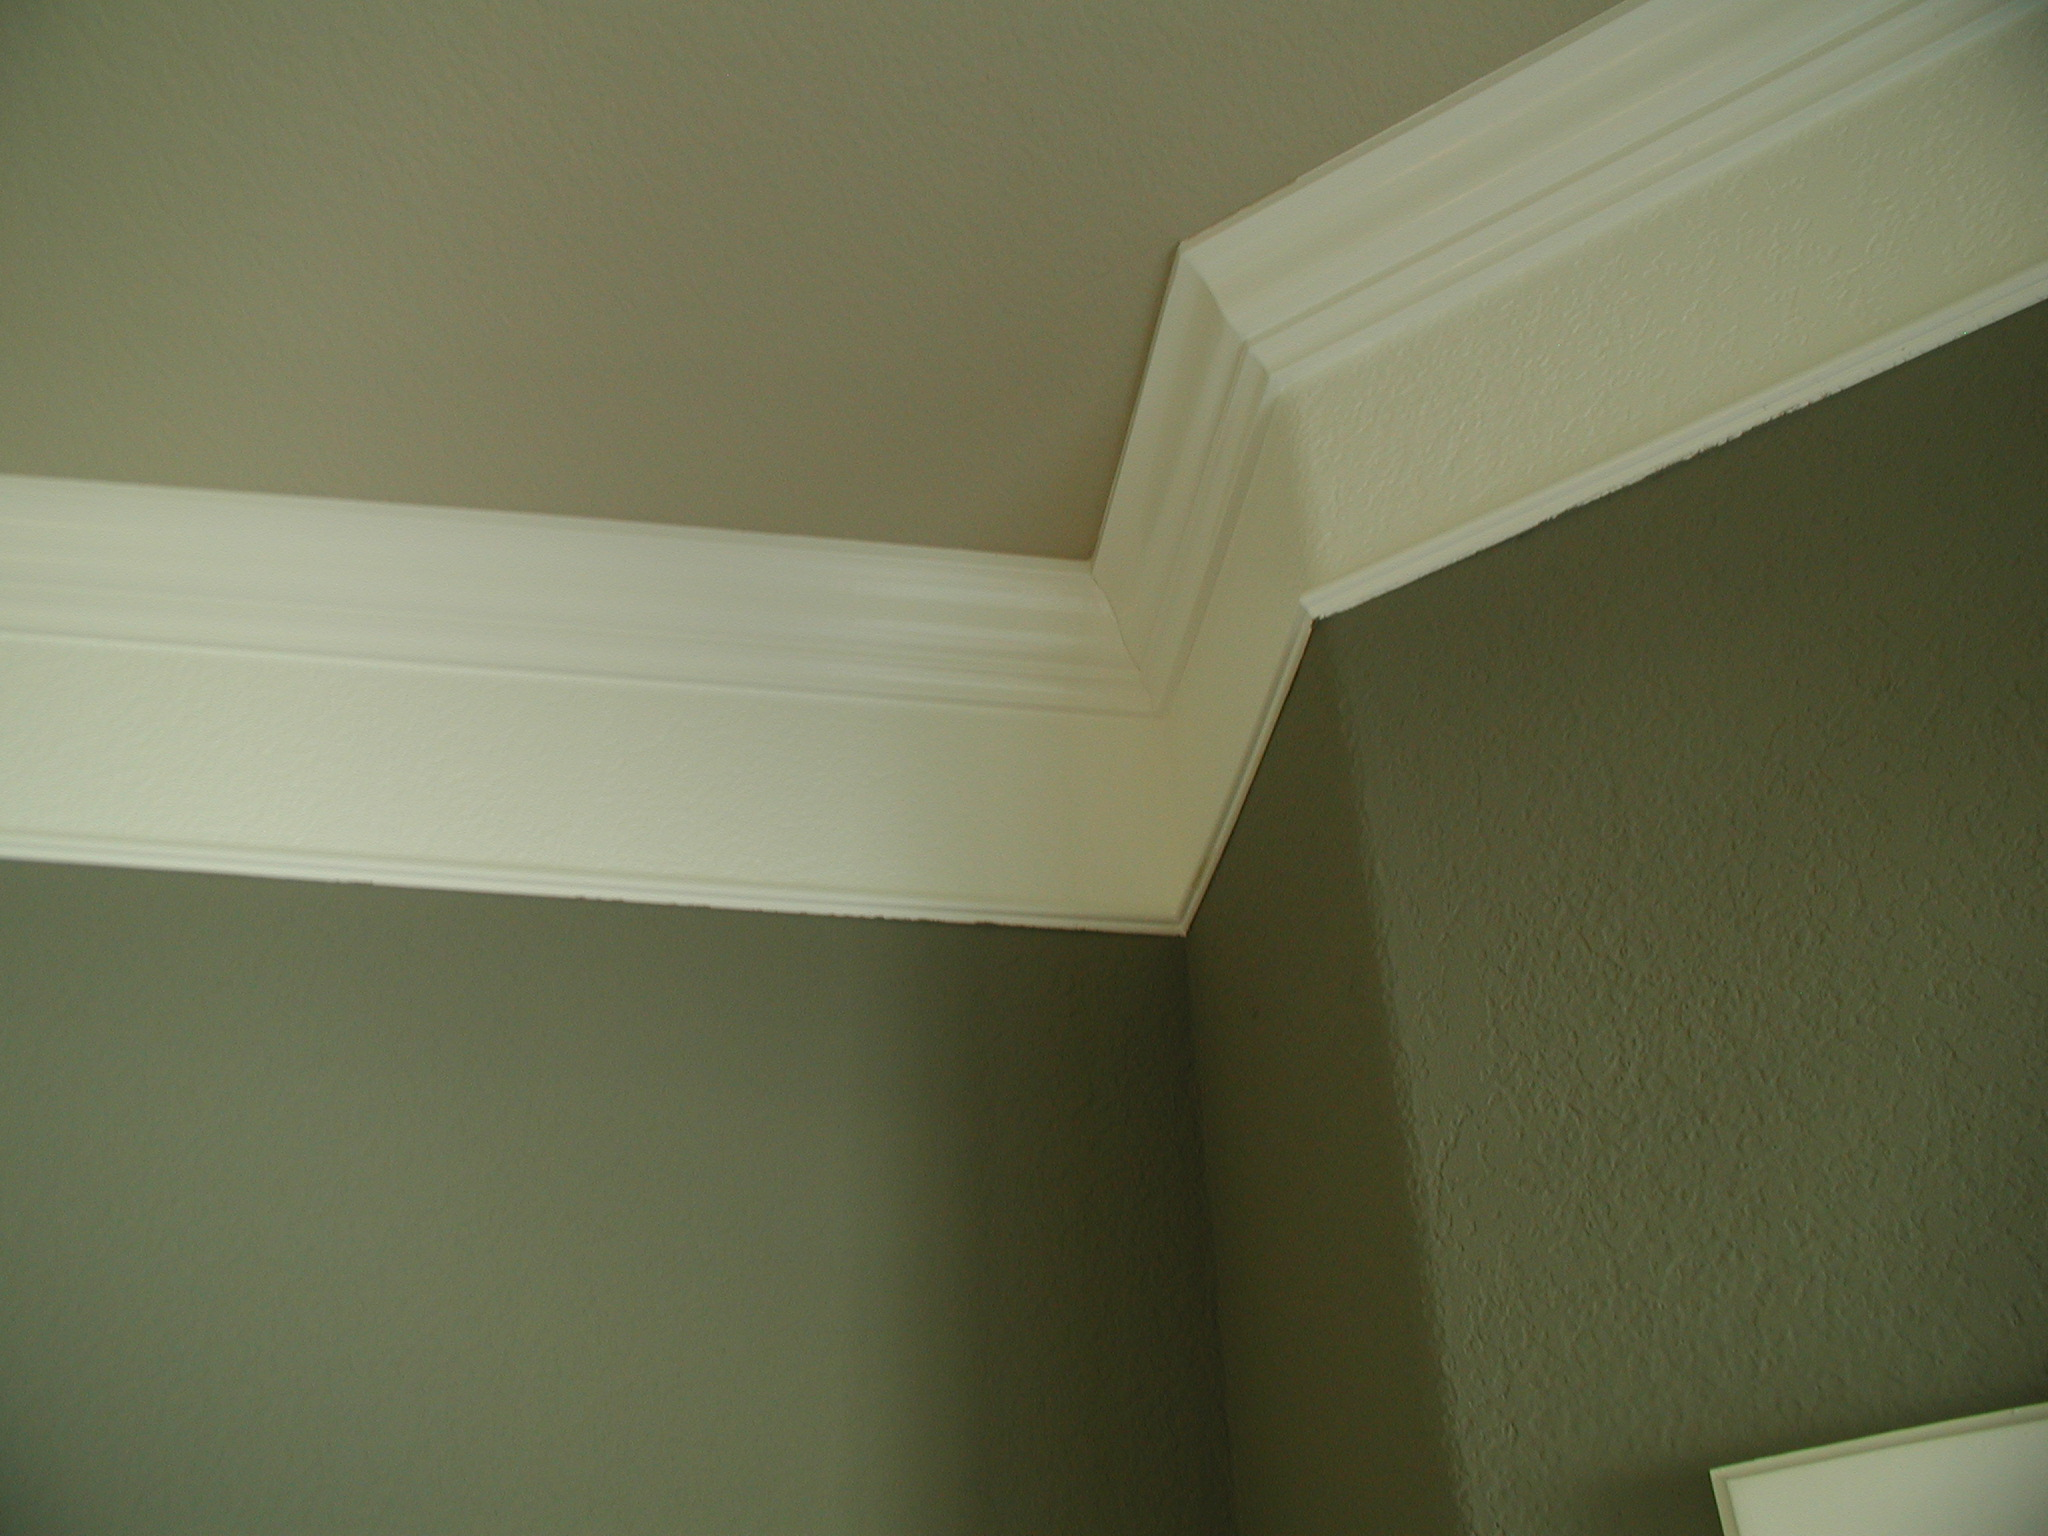 crown molding with plaster illusion